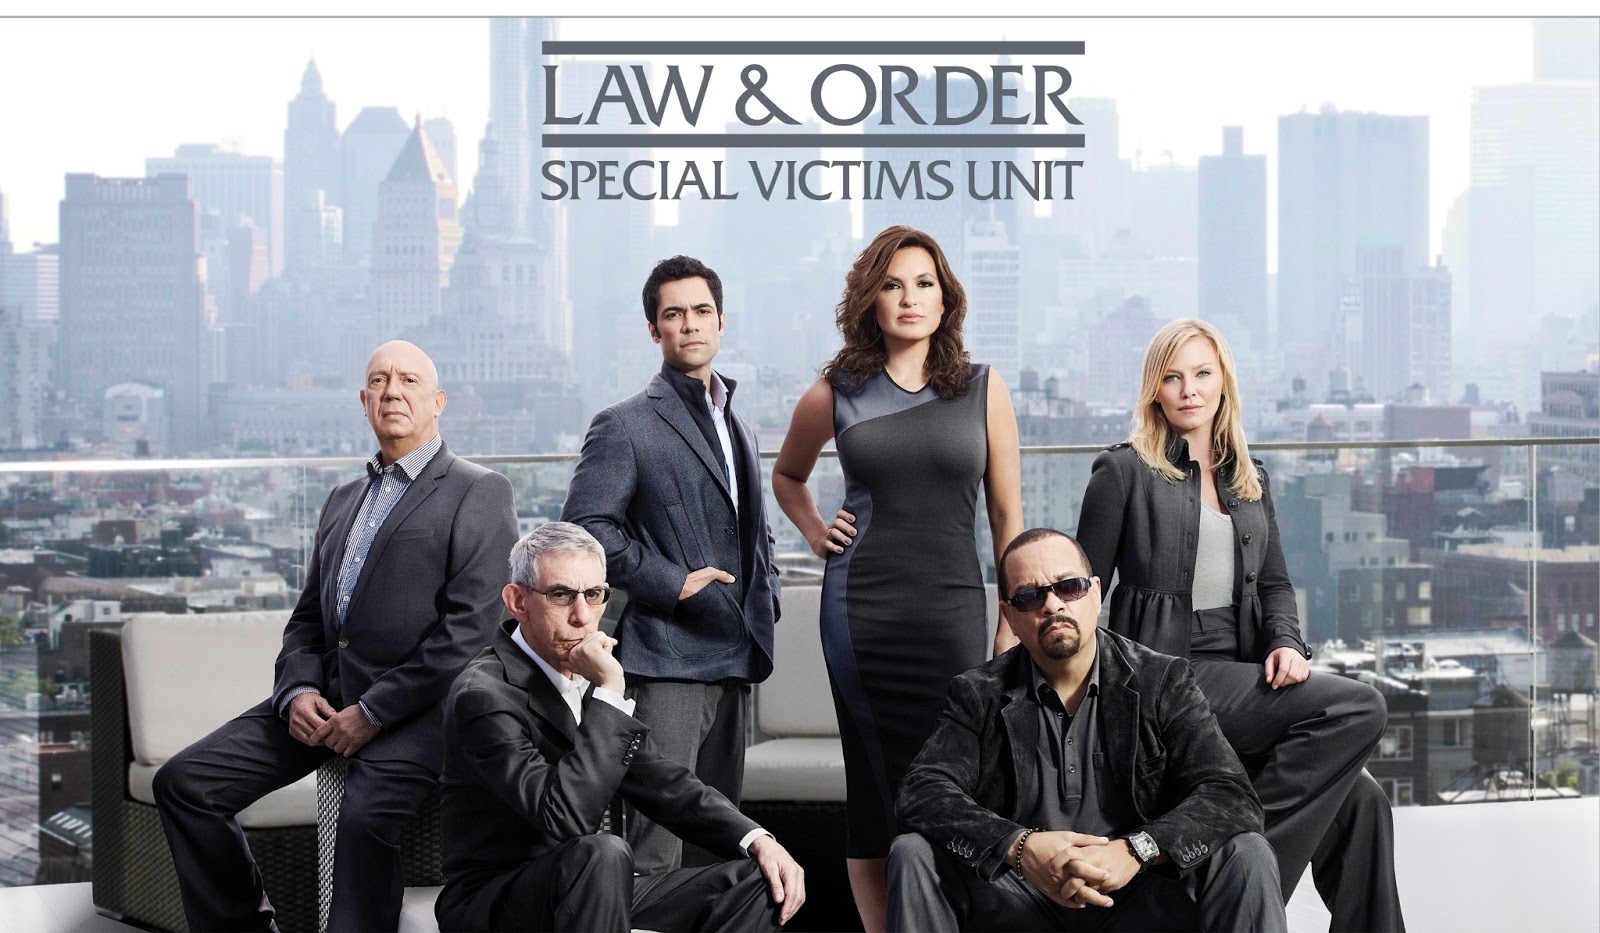 Law and Order SVU Season 14 Photos Promotional Mariska Hargitay Danny Pino Kelli Giddish Ice T